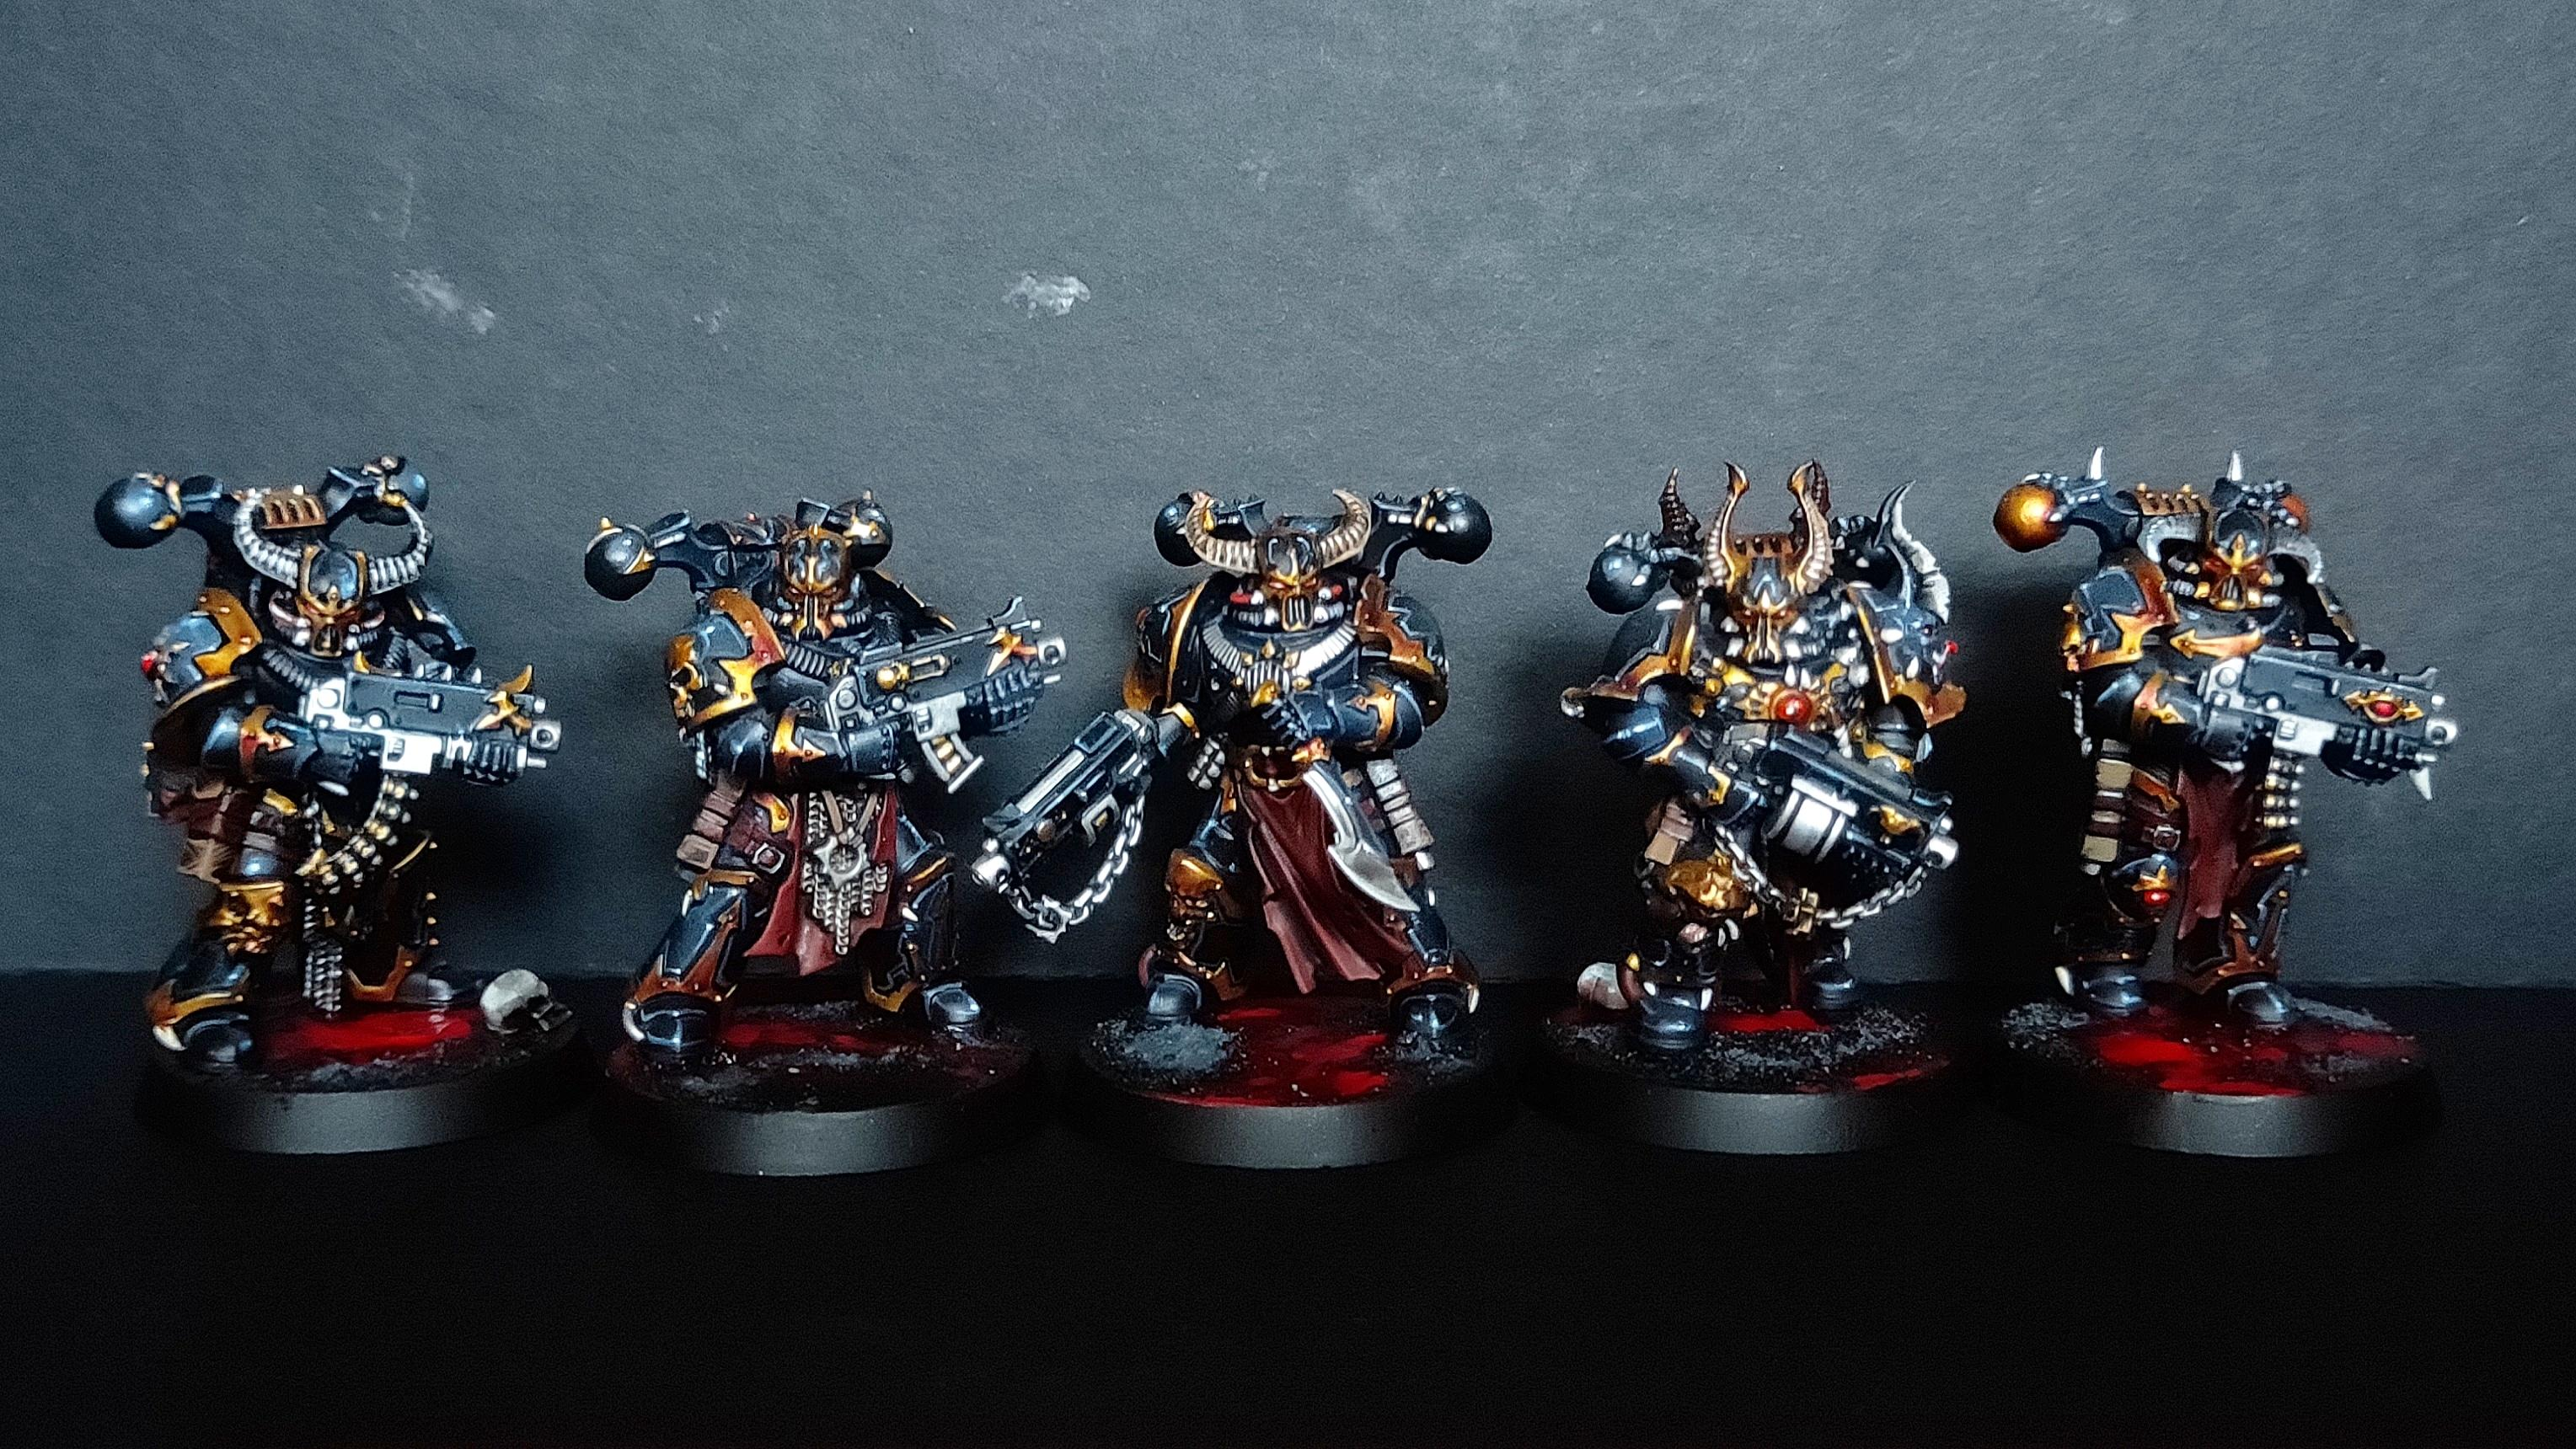 Black Legion, Chaos, Chaos Knight, Chaos Space Marines, Chaos Undivided, Heretic Astartes, Sin Eaters, Warhammer 40,000